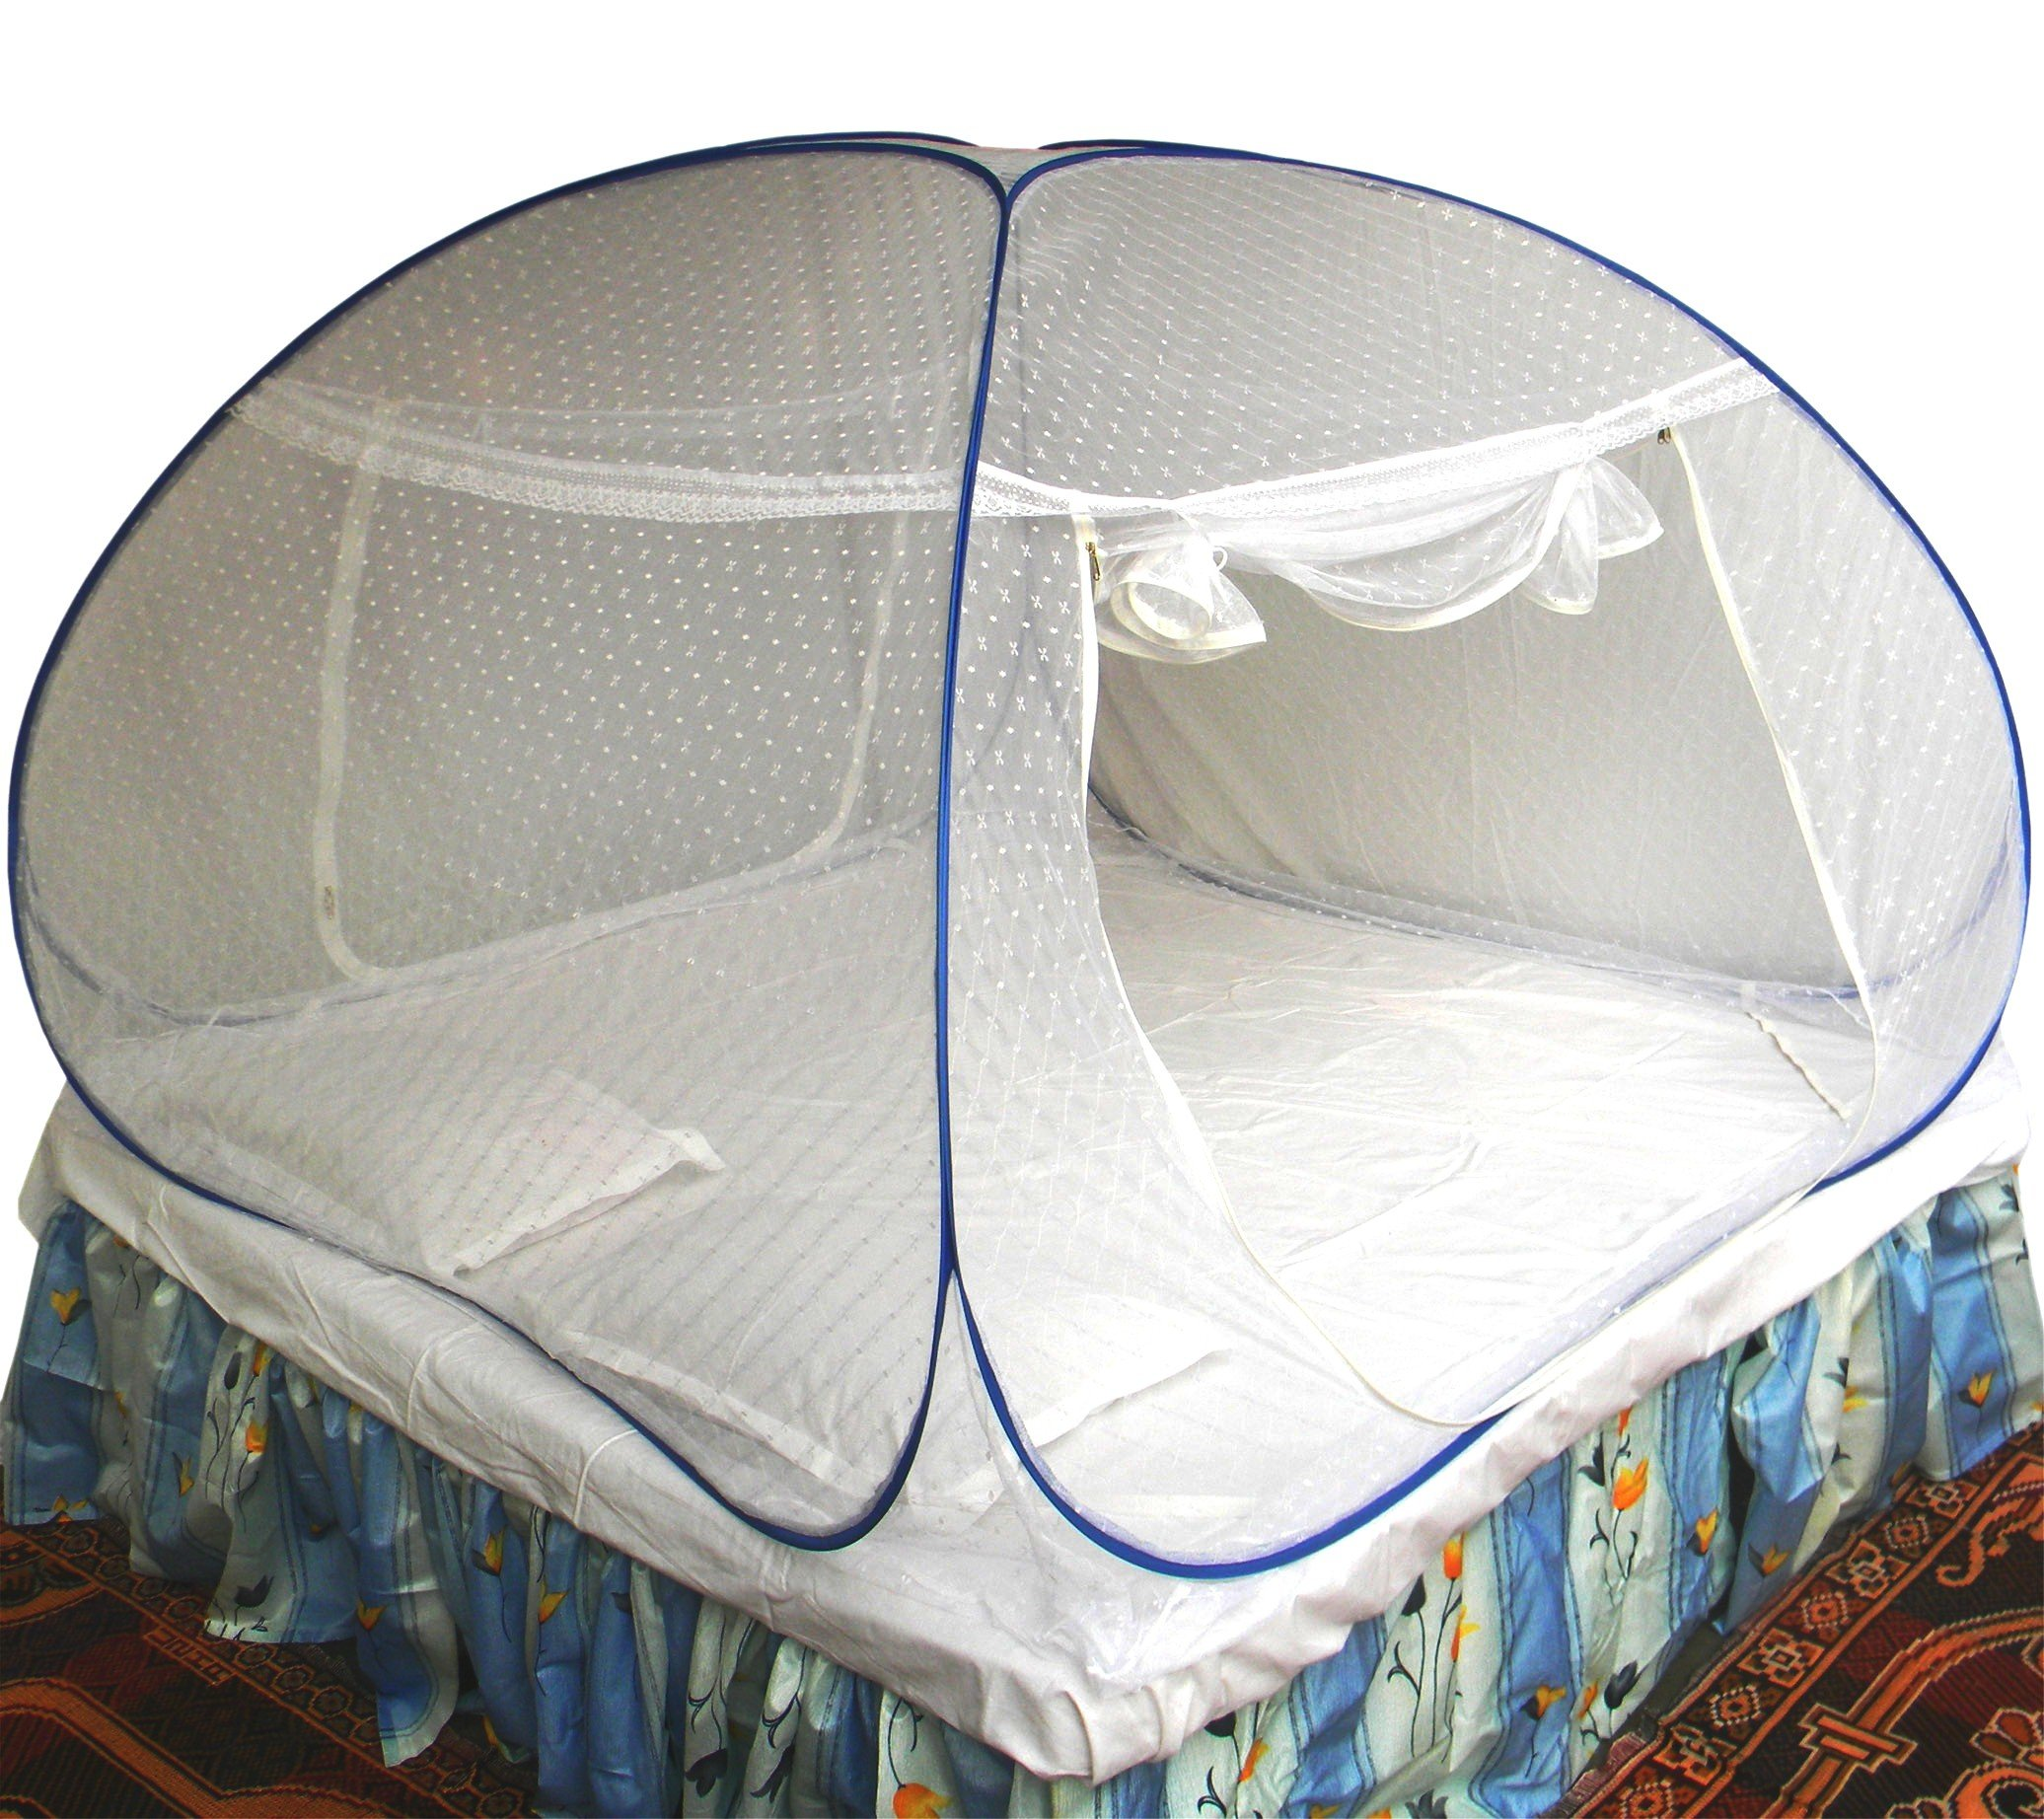 Healthy Sleeping Foldable Polyester Double Bed Mosquito Net - Embroidery (White) product image